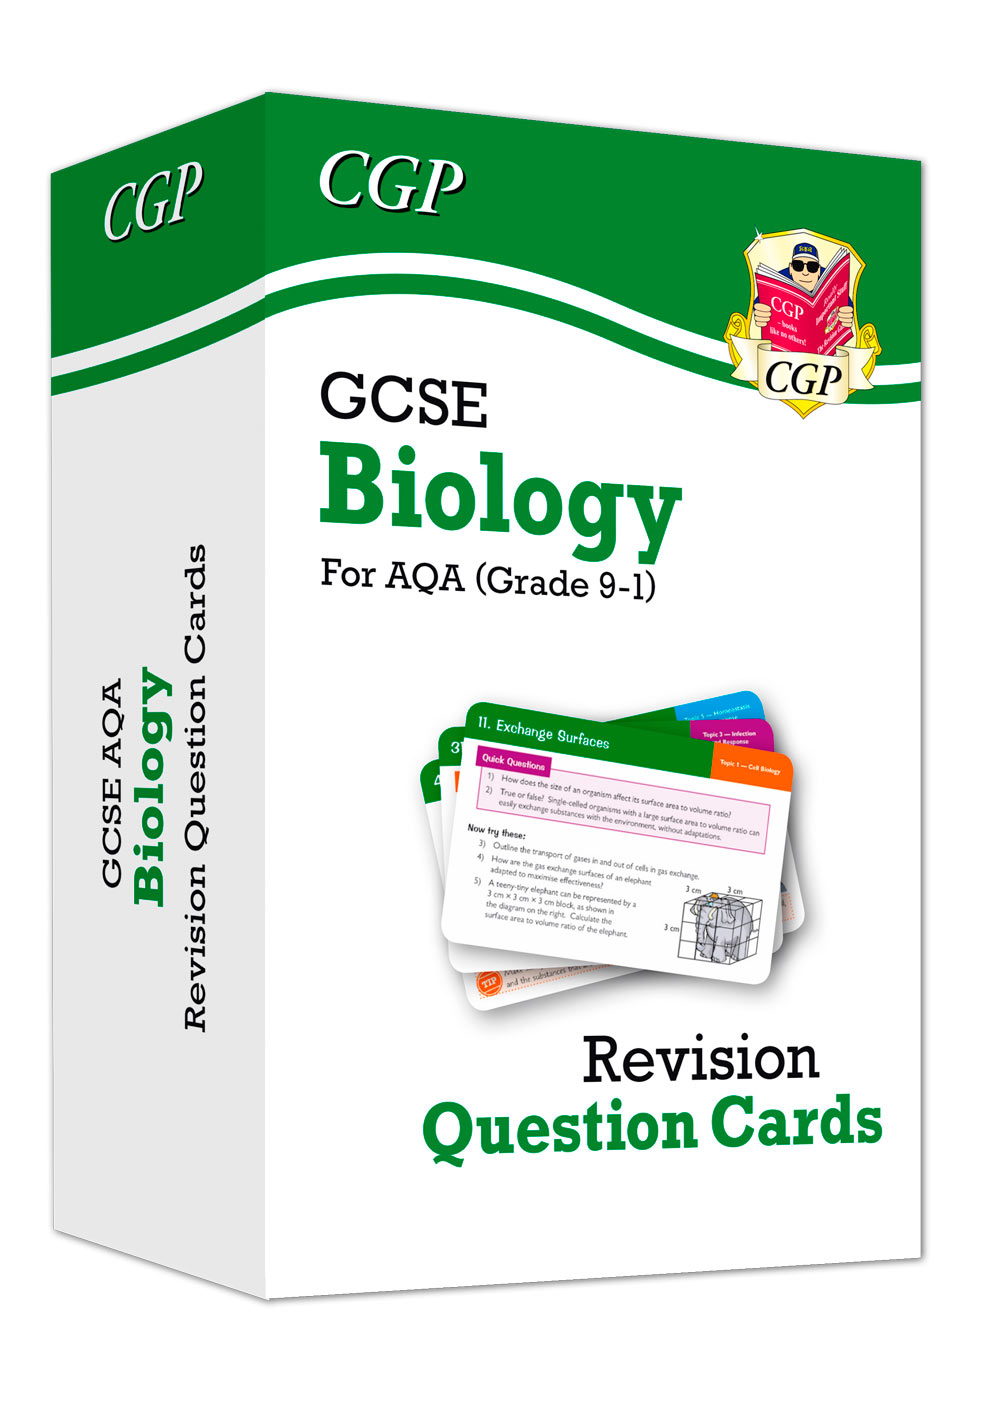 BAF41 - 9-1 GCSE Biology AQA Revision Question Cards